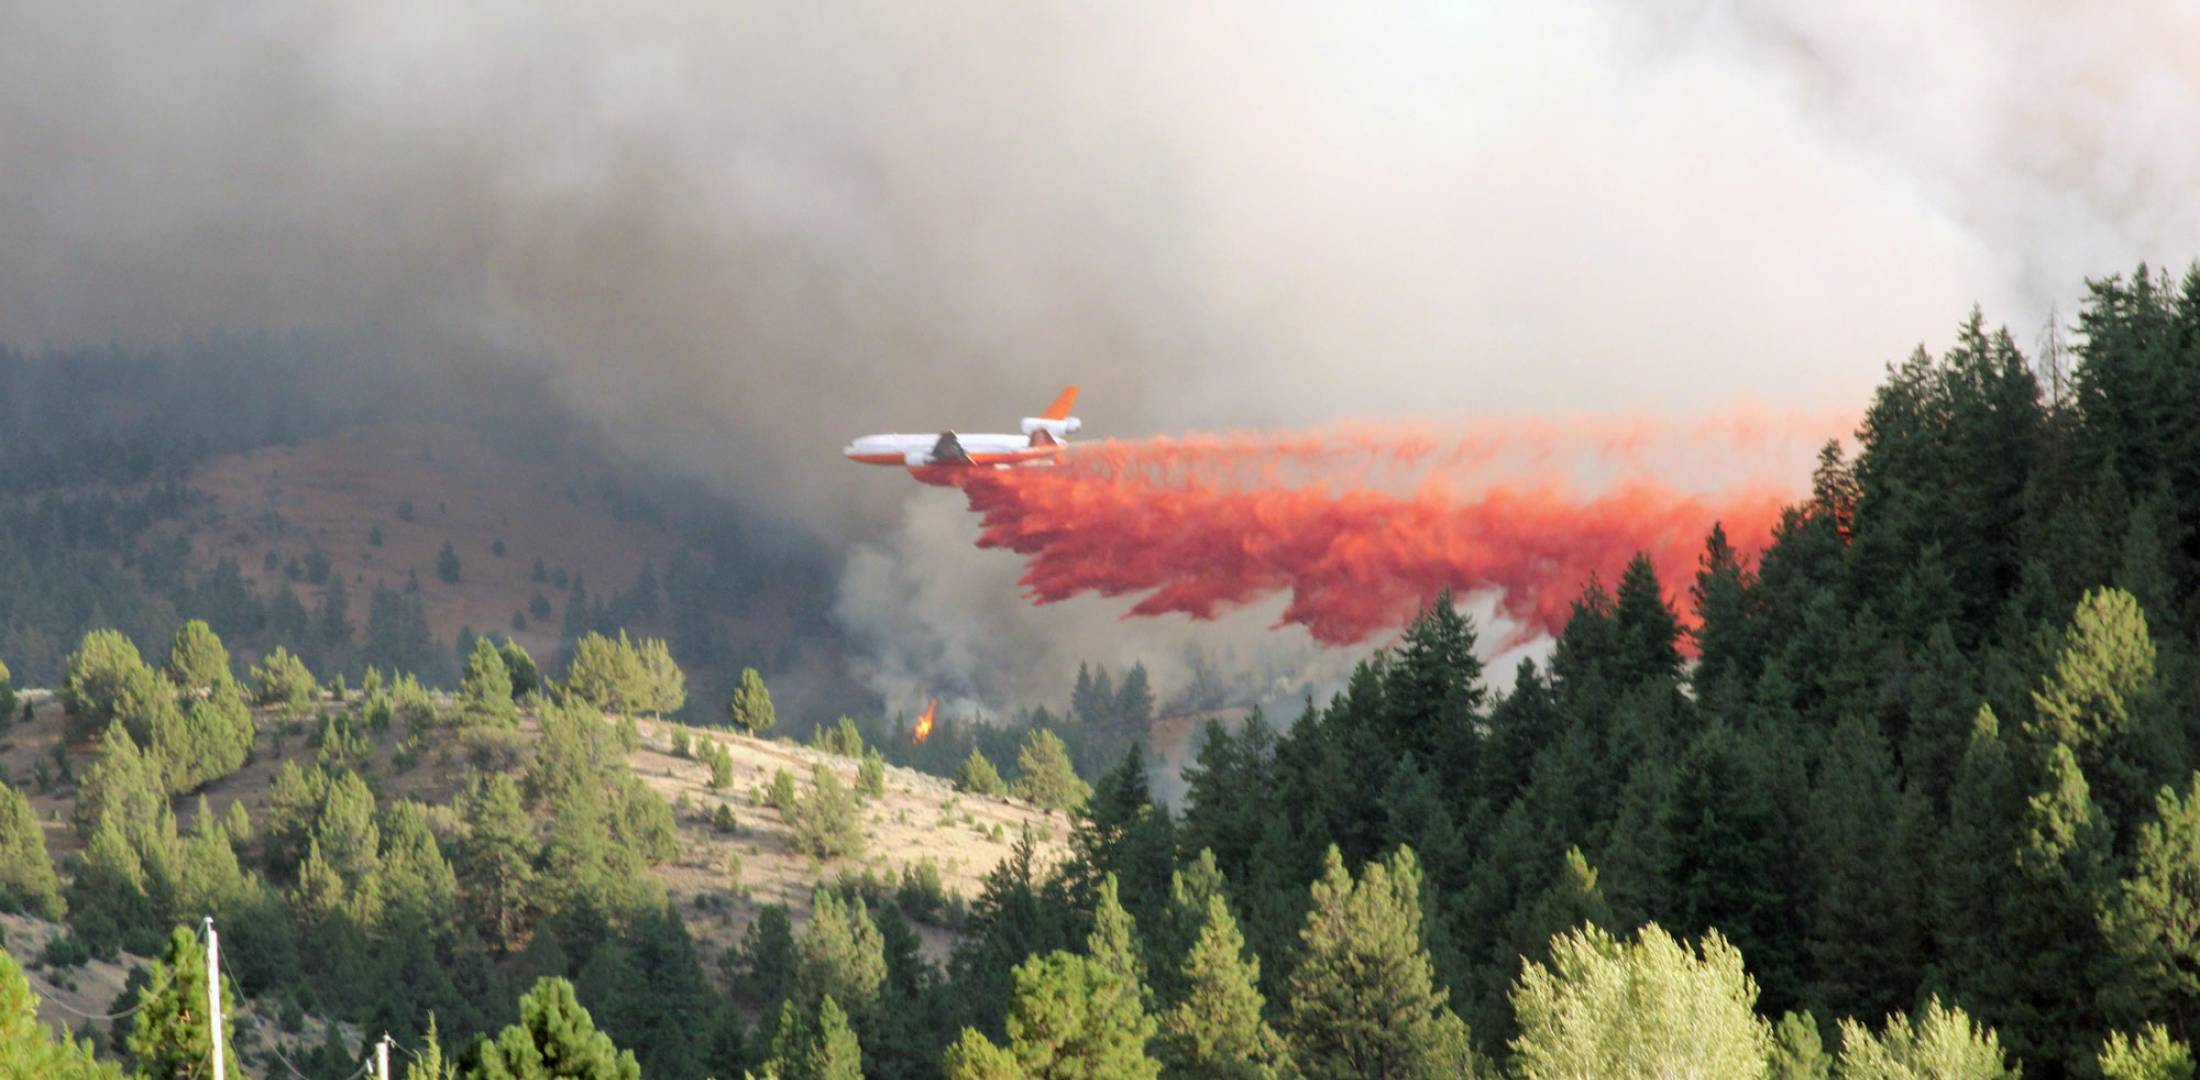 aircraft dropping fire suppressant